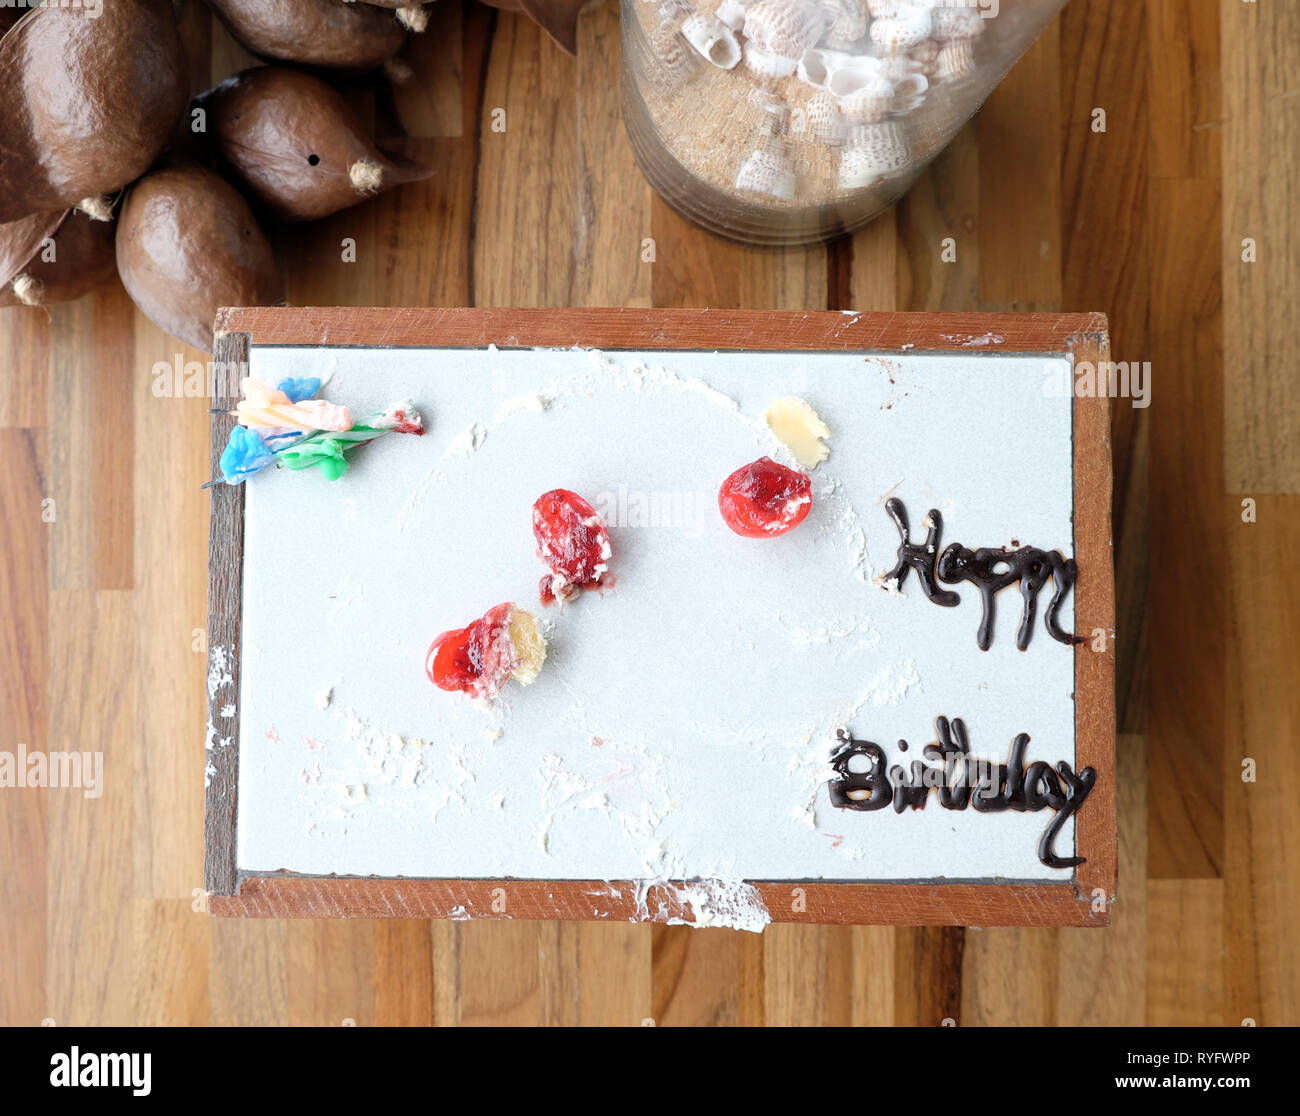 Outstanding Happy Birthday Cake Dirty And Empty Stock Photo 240680014 Alamy Personalised Birthday Cards Petedlily Jamesorg